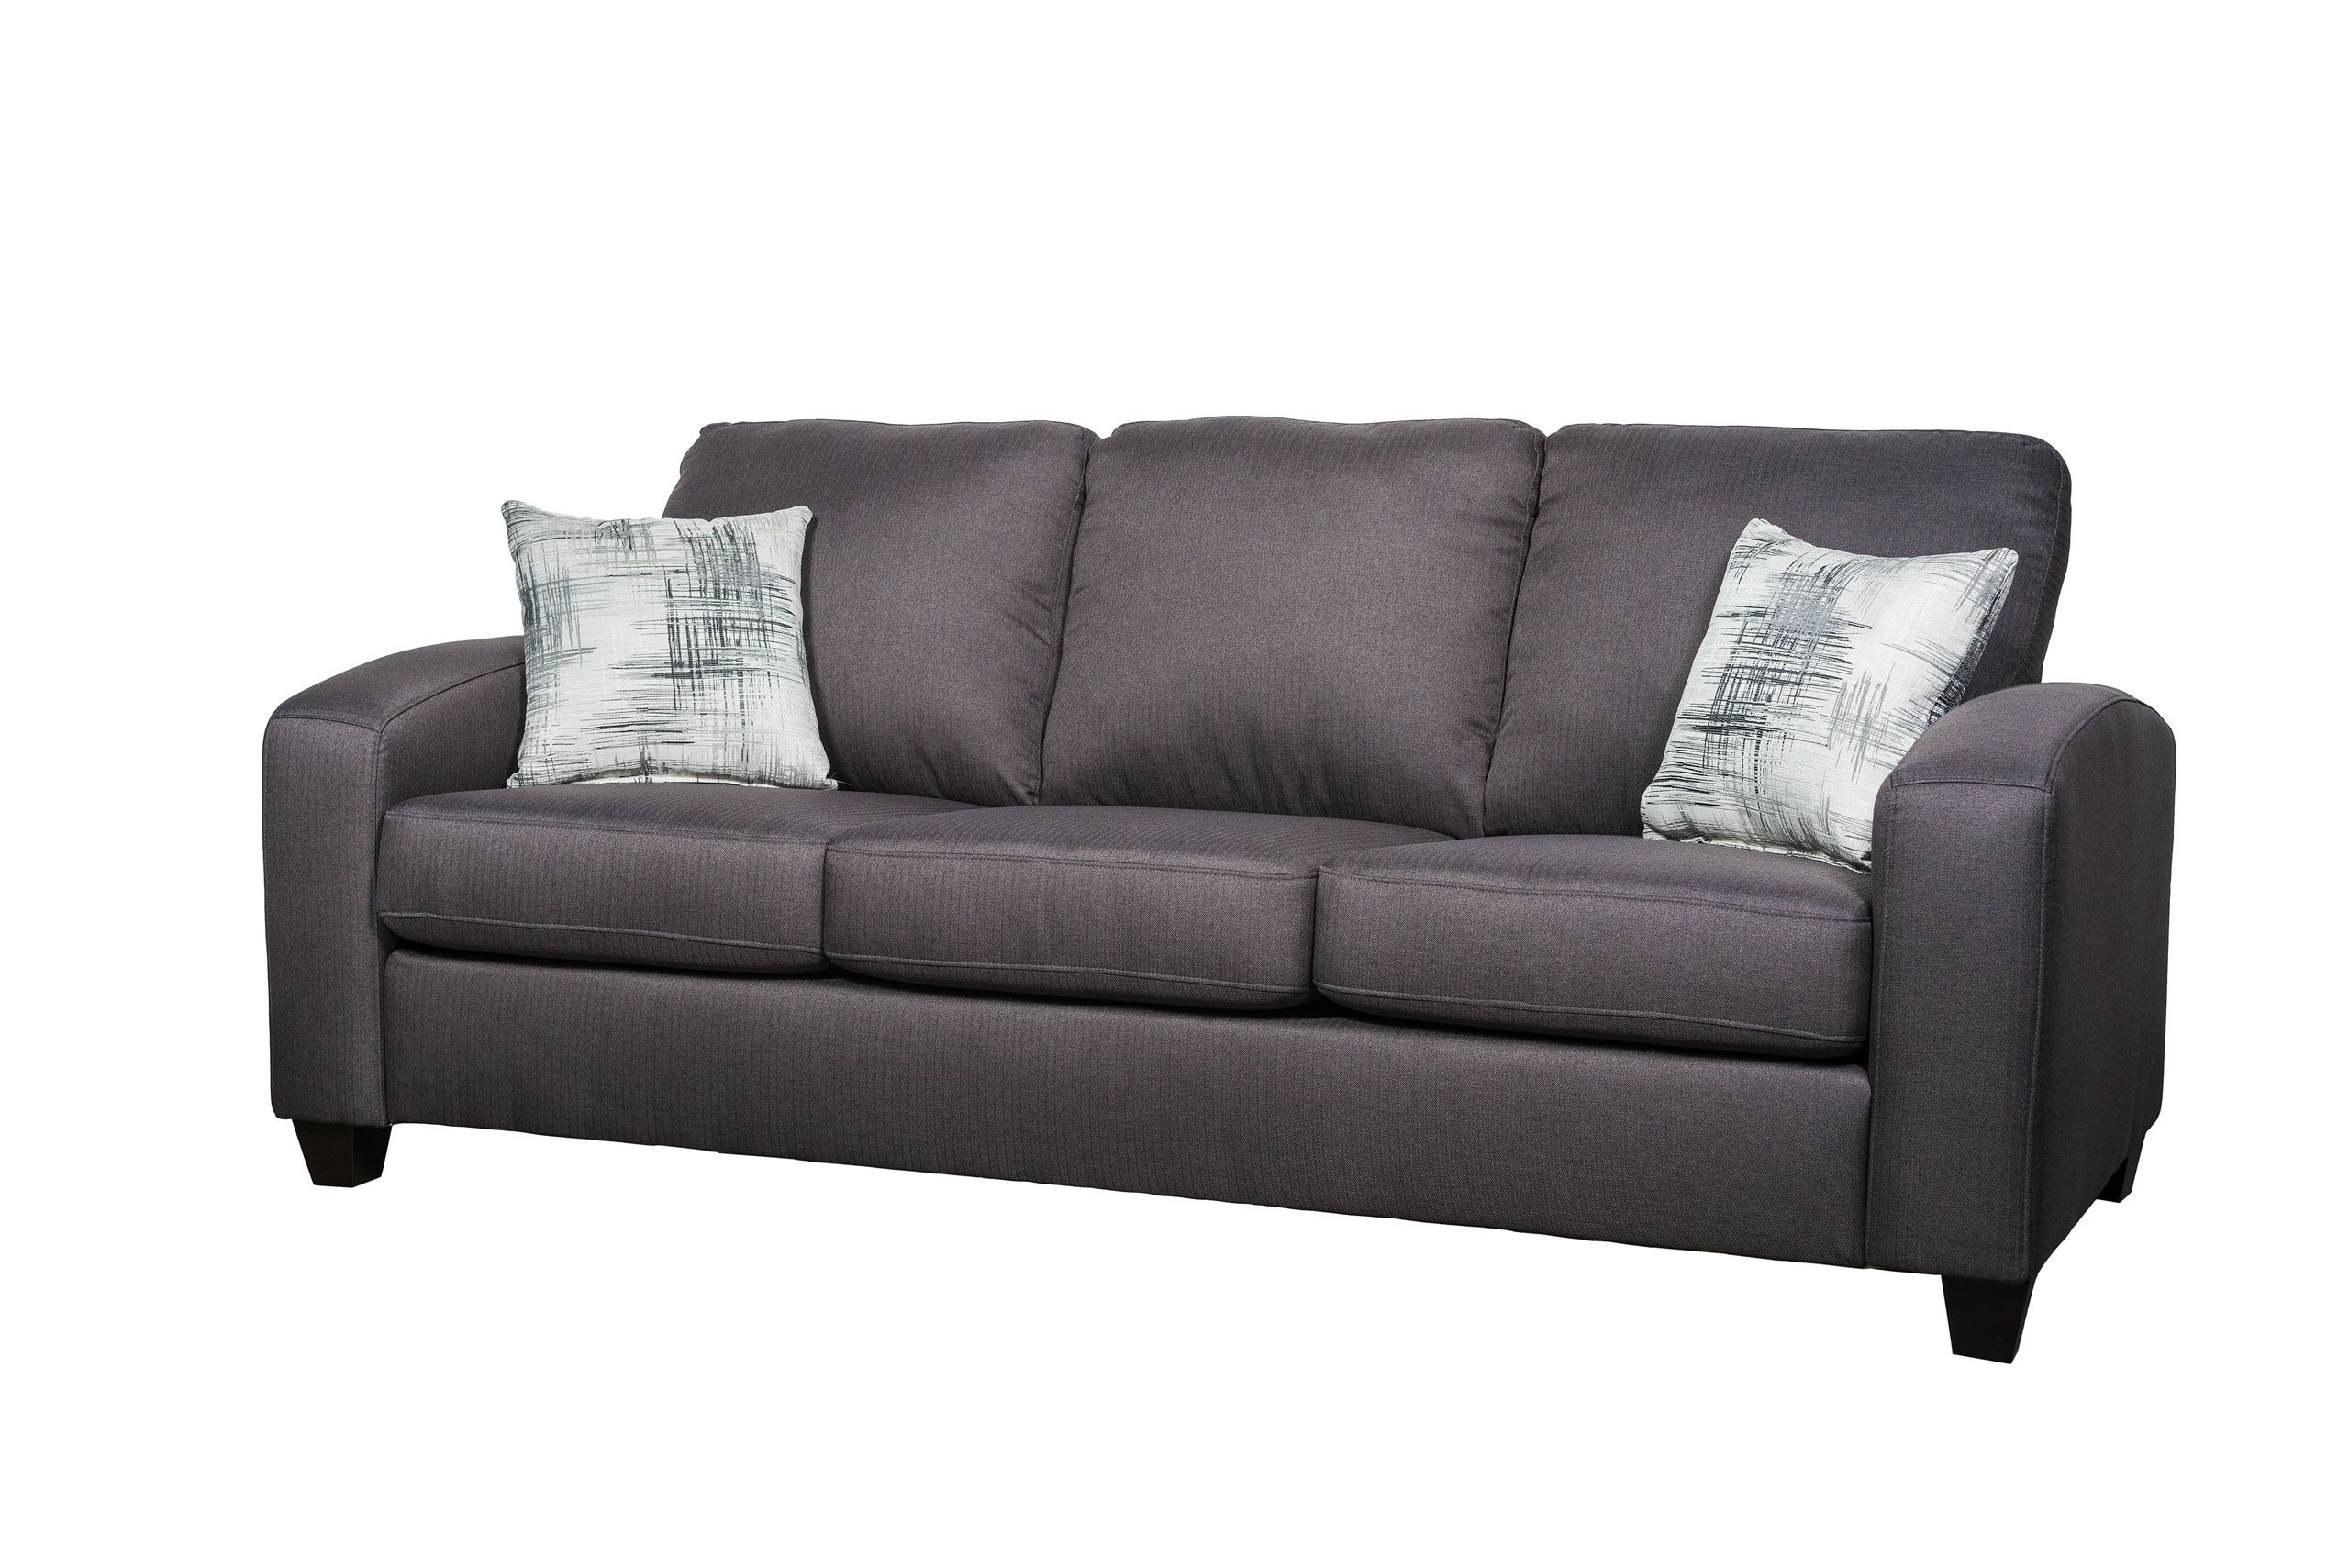 Canadian Made Sofas Toronto Sofa Canada Made Review Home Co